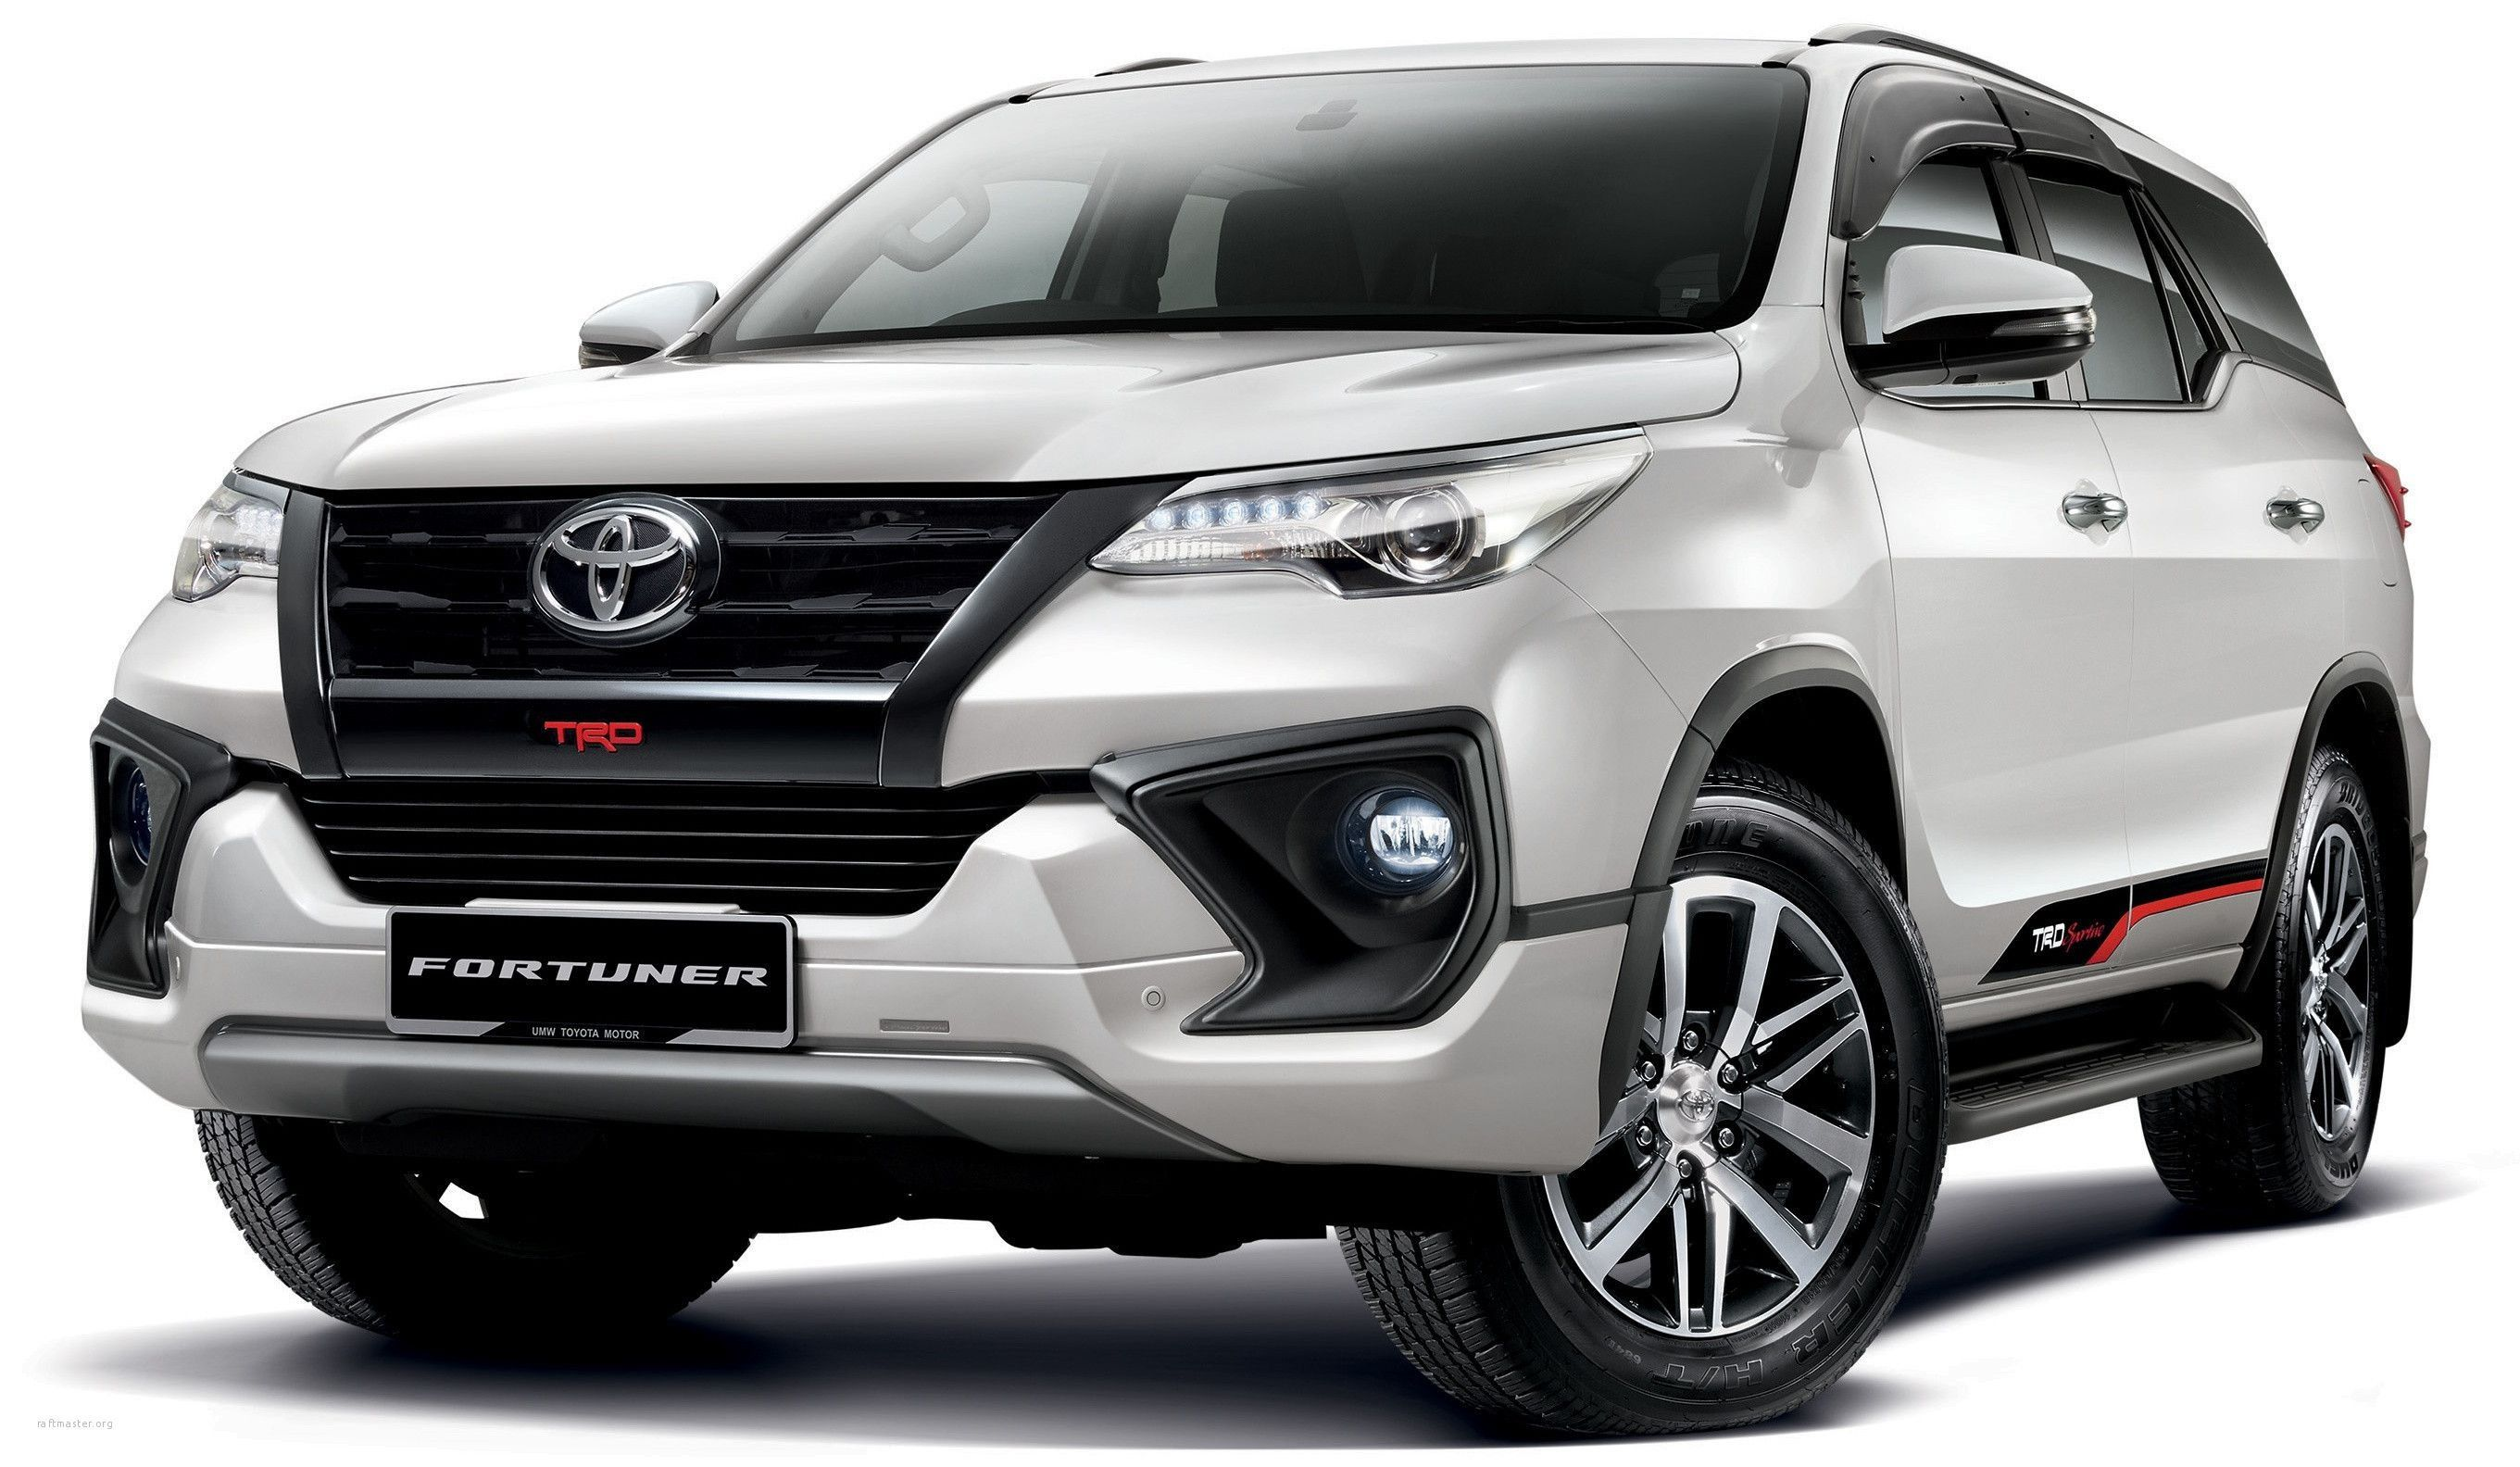 Best Toyota Fortuner 2019 Facelift Exterior Future Car 2019 Toyota Suv Suv Cars